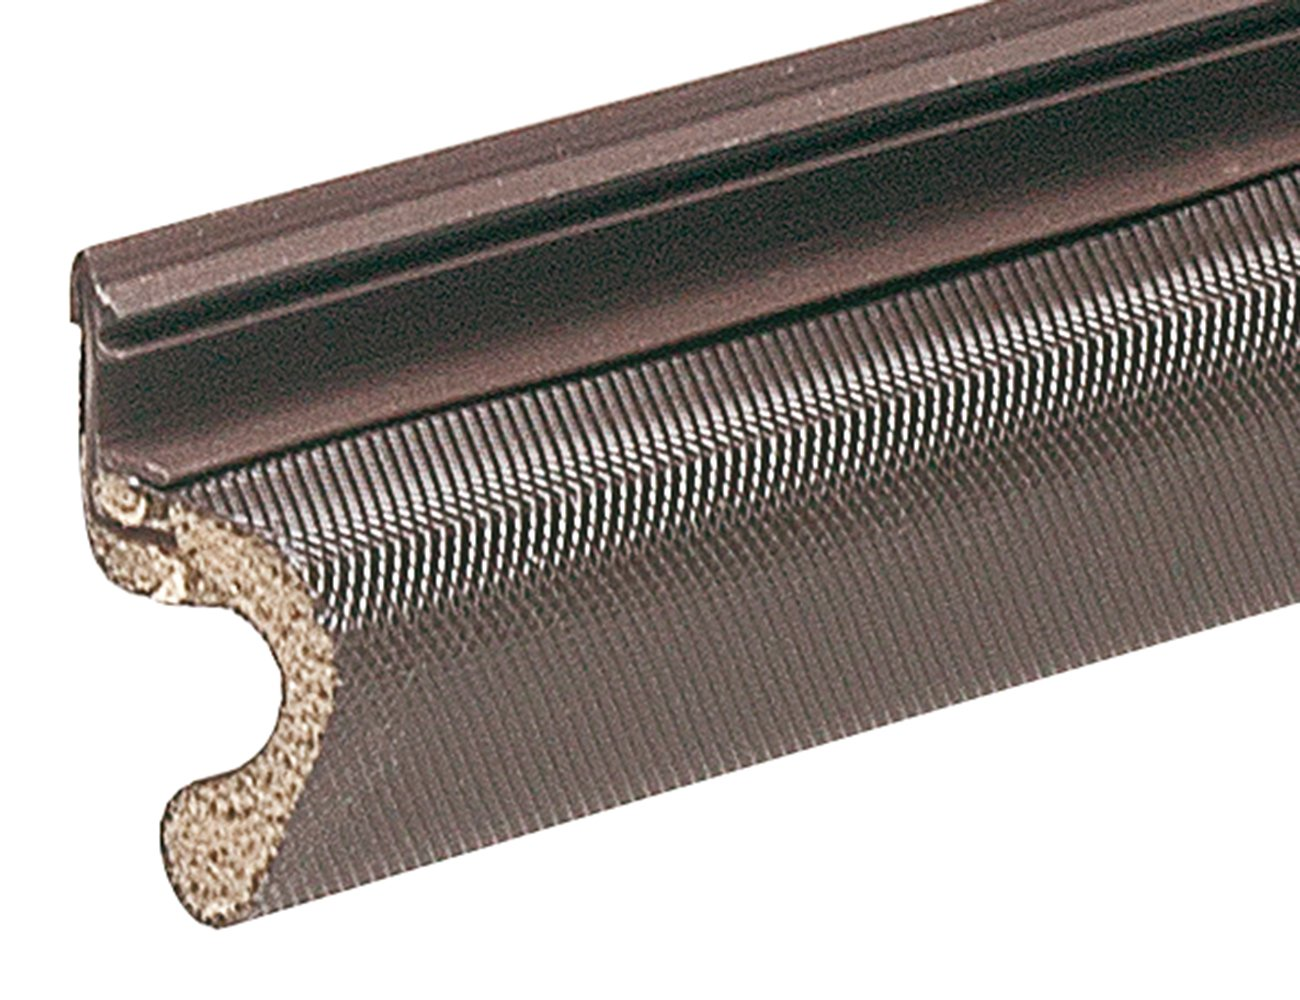 Frost King DS8B//25 Replacement Seal for Kerfed Millwork Doors 1 x 8 ft Brown